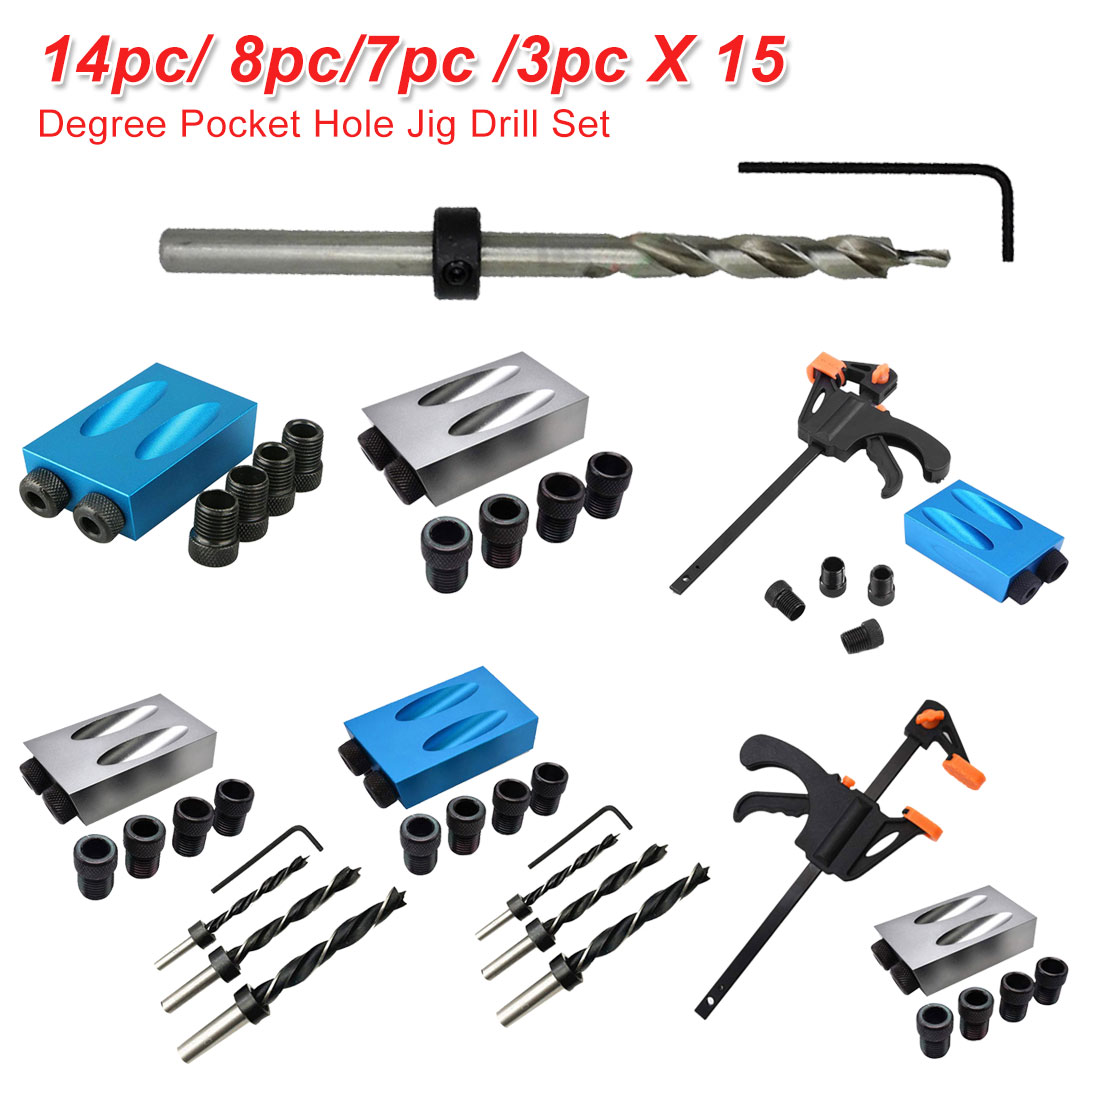 14pc/ 8pc/7pc /3pc Pocket Hole Jig Replaceable 6mm 8mm 10mm Drill Guide Back Dowel Jig Kit Wood Drill For Woodworking Jointing